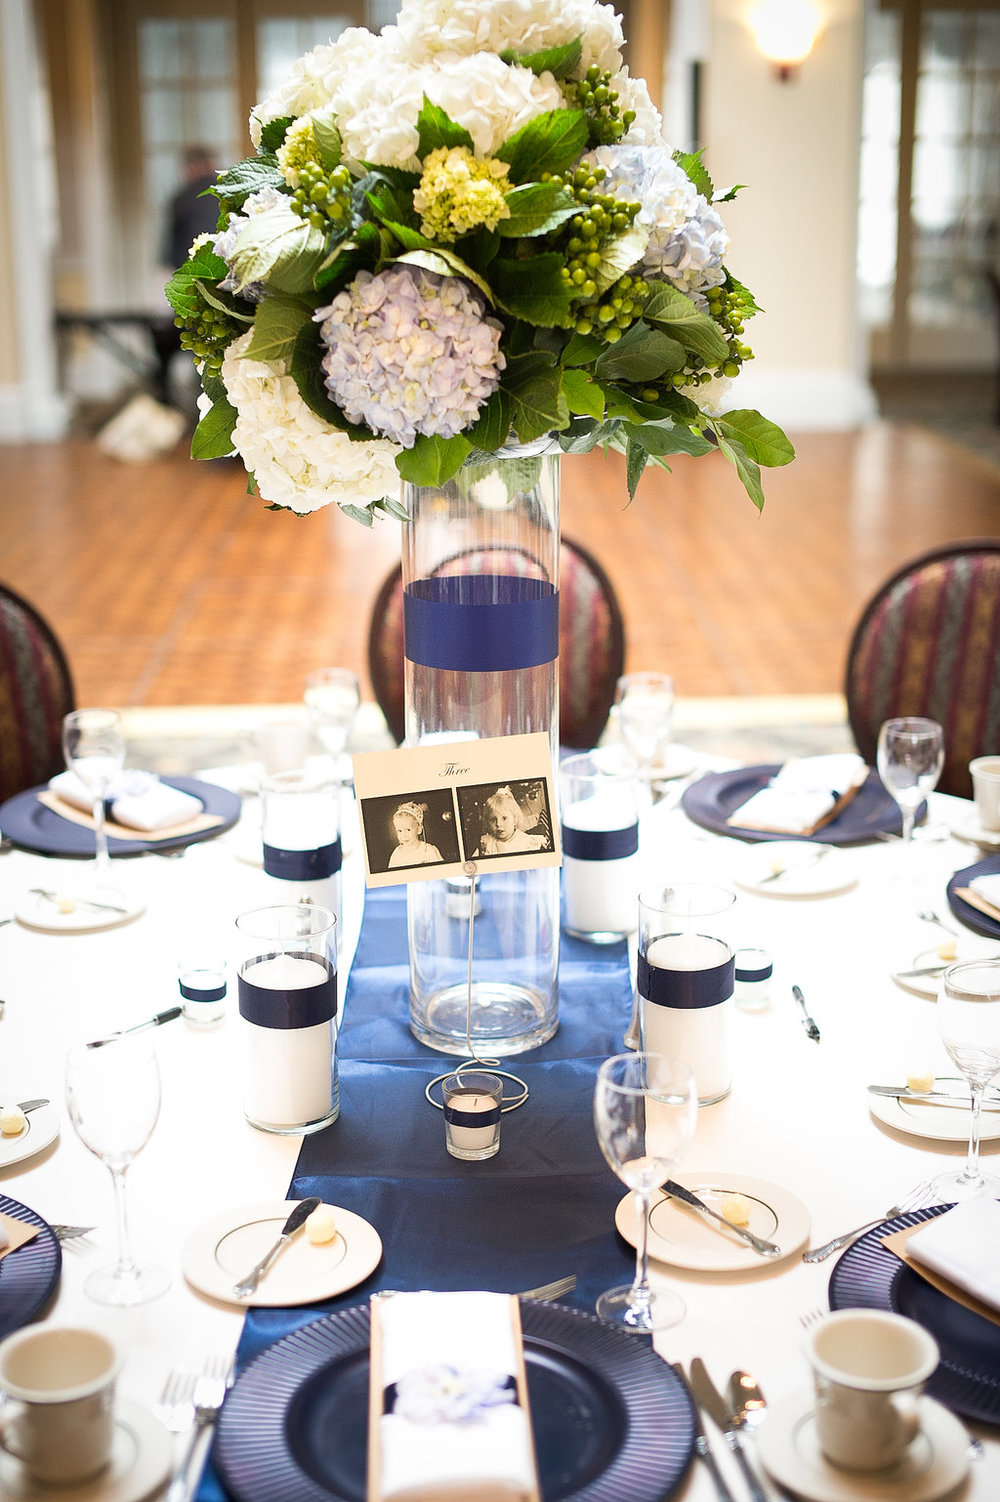 For the centerpieces we did a mix of white, blue and green hydrangeas with hypericum berries in a lush bouquet atop a cylinder vase with navy satin stripe over a mix of pillar and votive candles with matching navy satin stripe.